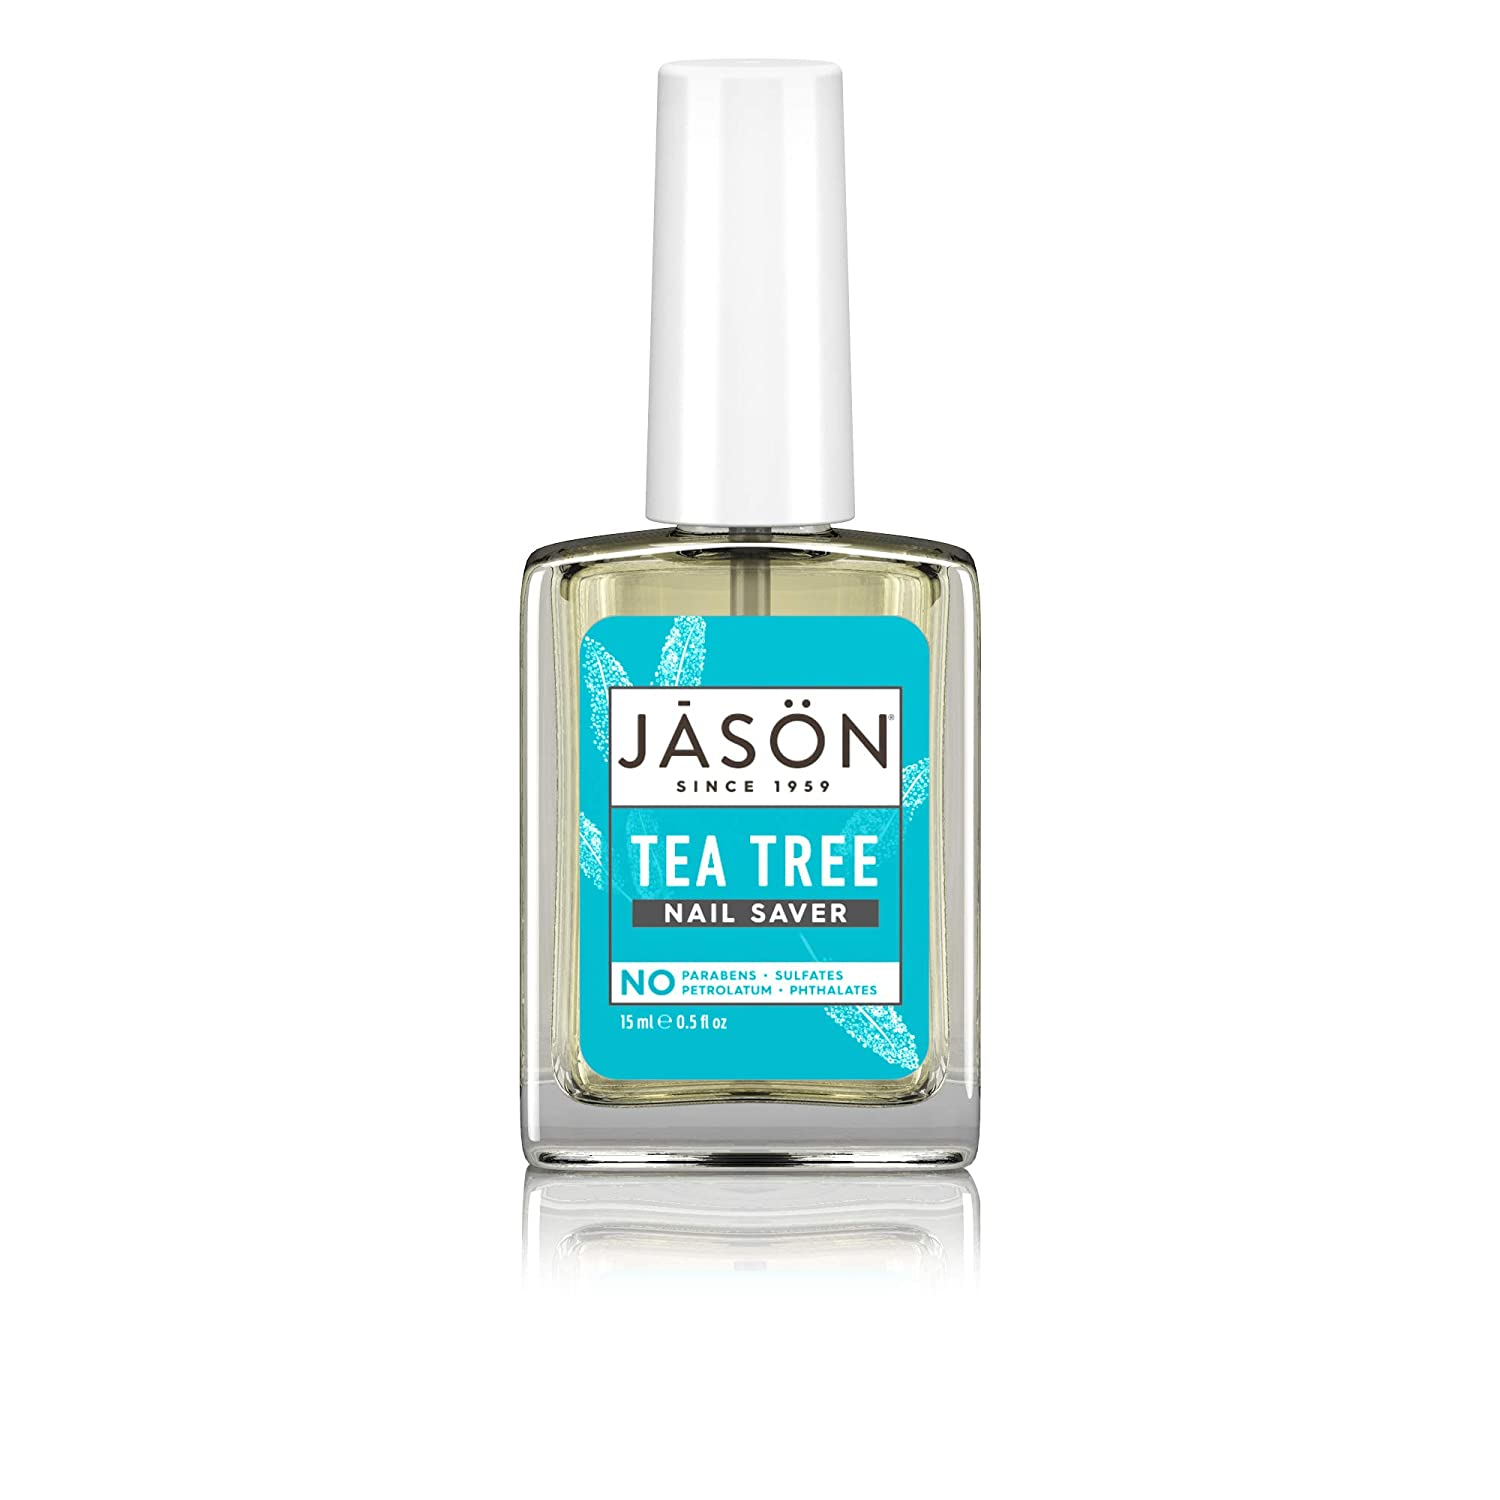 JASON Purifying Tea Tree Nail Saver, 0.5 Ounce Bottle (Pack of 4)